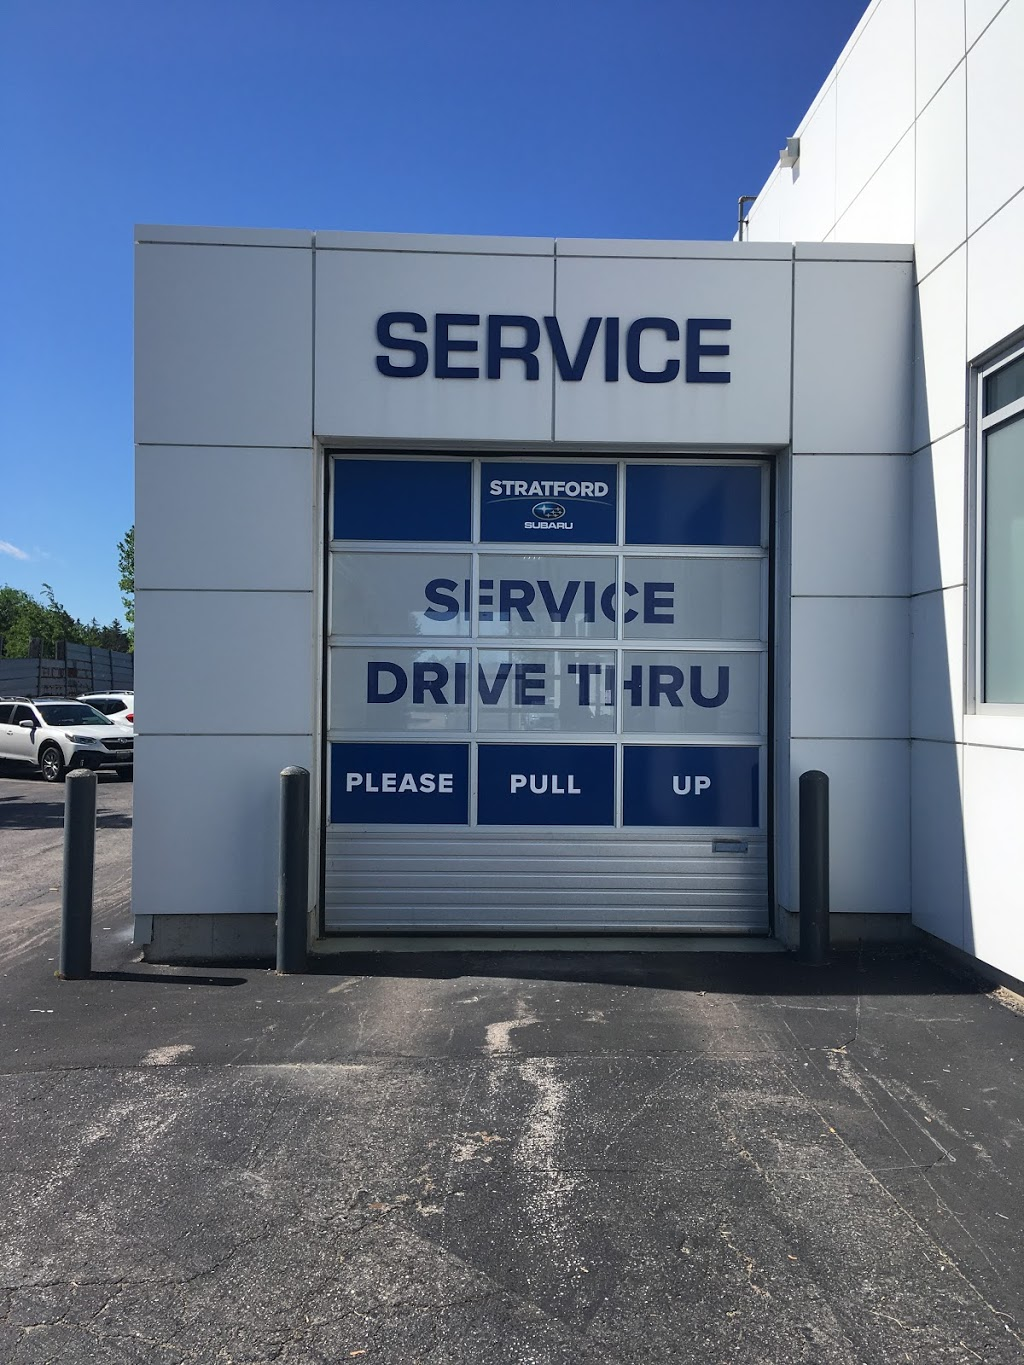 Stratford Subaru Vehicle Service Department | car repair | 2001 Ontario St, Stratford, ON N5A 6S5, Canada | 5192733116 OR +1 519-273-3116